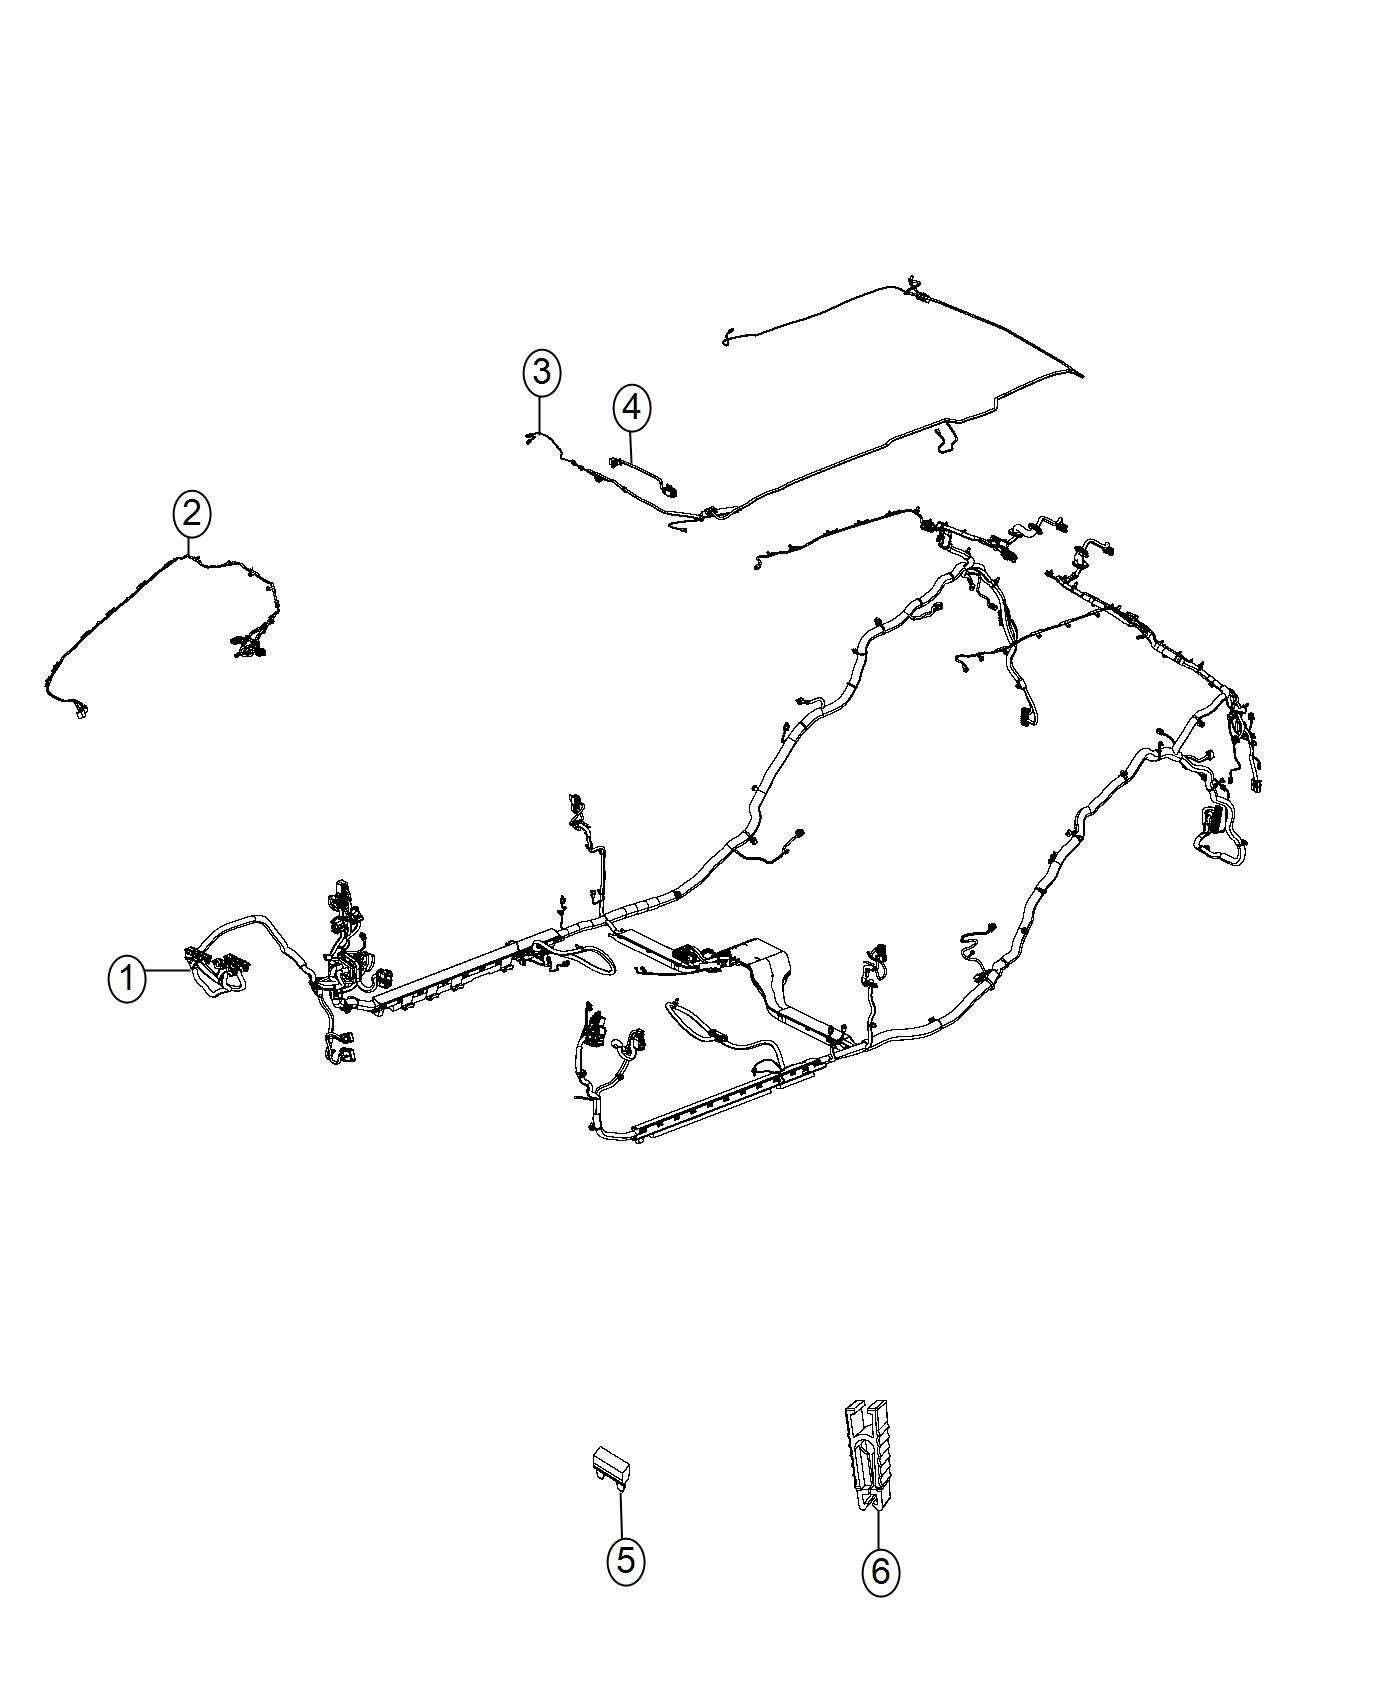 i2340475 Jeep Windshield Wipers Wiring Diagram on fuel gauge wiring diagrams, thermostat wiring diagrams, 1995 volkswagen jetta electrical diagrams, light wiring diagrams, alternator wiring diagrams, water pump wiring diagrams, ignition wiring diagrams, rear wiper wiring diagrams, truck wiring diagrams, radio wiring diagrams, electrical wiring diagrams, power window wiring diagrams, starter wiring diagrams, wiper circuit diagrams, brake wiring diagrams, motor wiring diagrams, switch wiring diagrams, steering column wiring diagrams, hvac wiring diagrams, chevrolet engine vacuum routing diagrams,